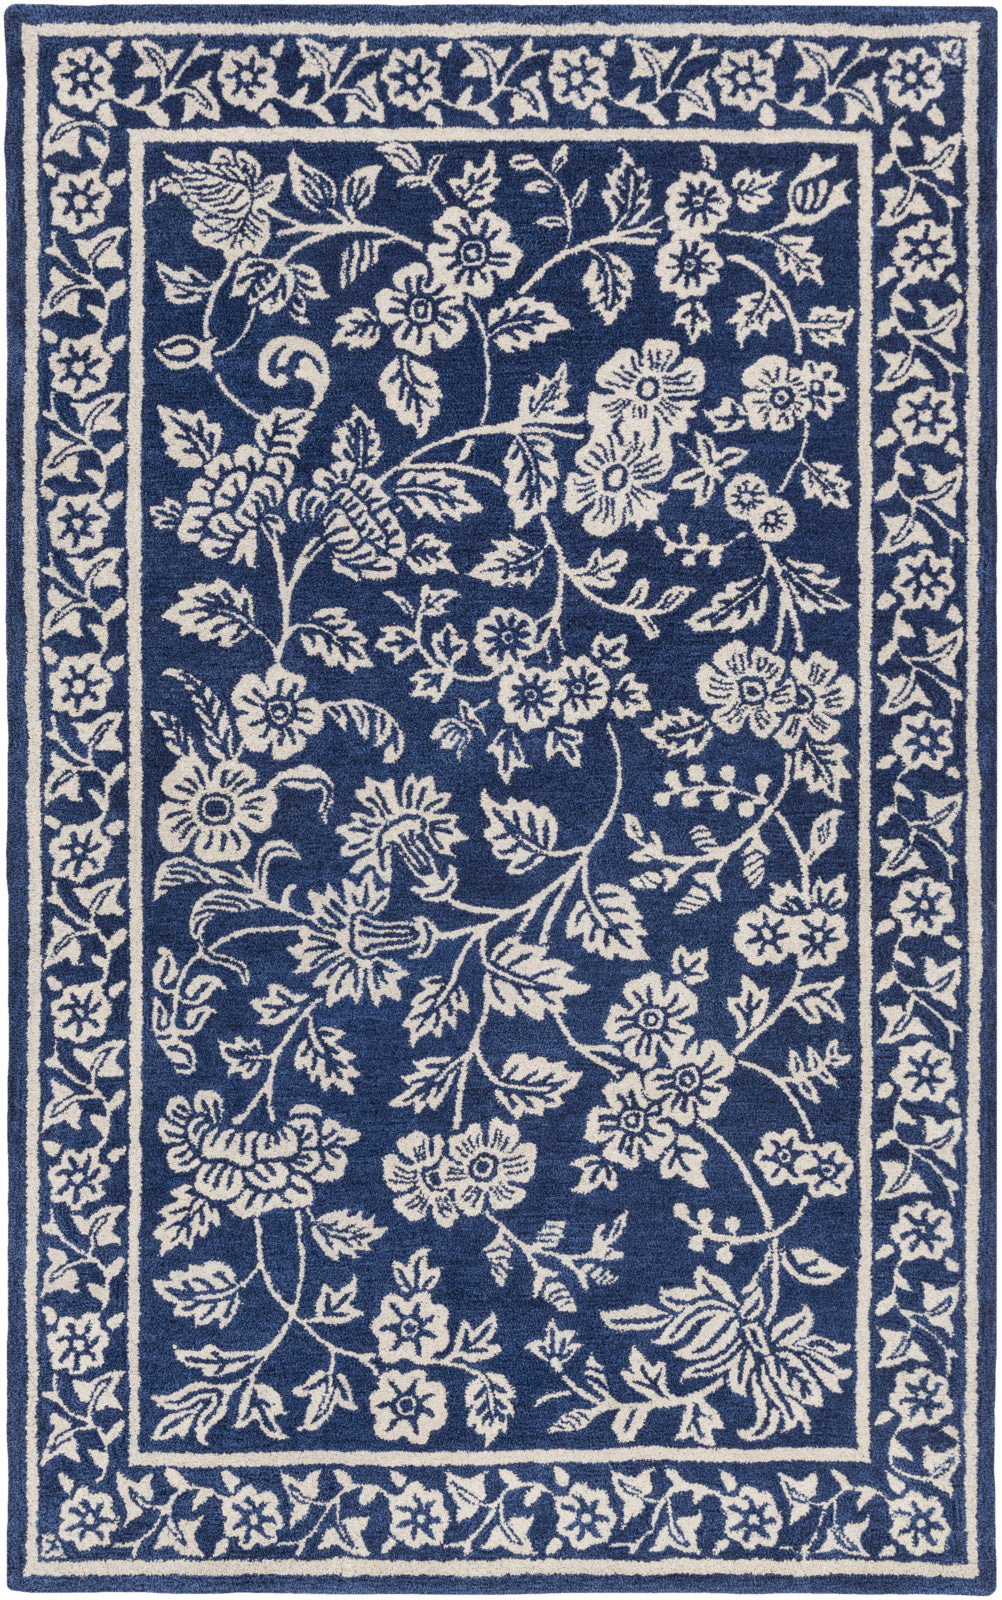 Surya SMI-2161 Blue Area Rug by Smithsonian